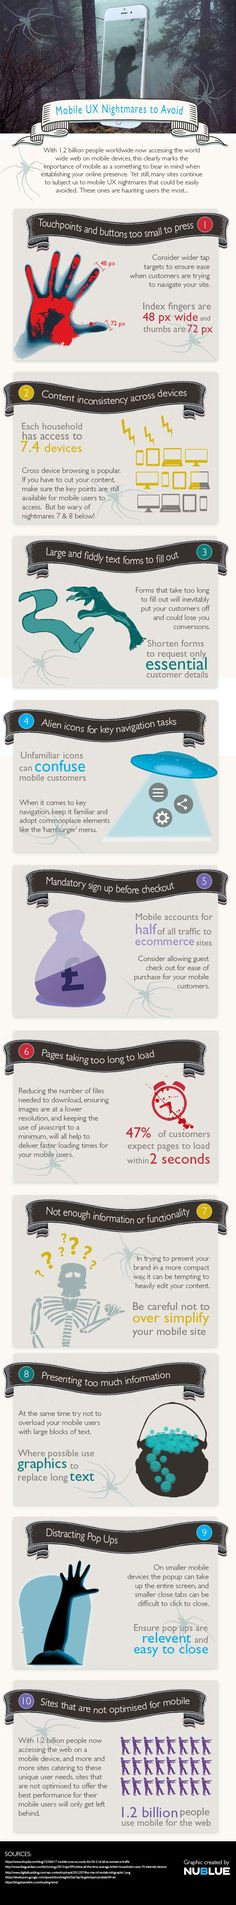 10 mobile UX nightmares to avoid   Infographic   Creative Bloq